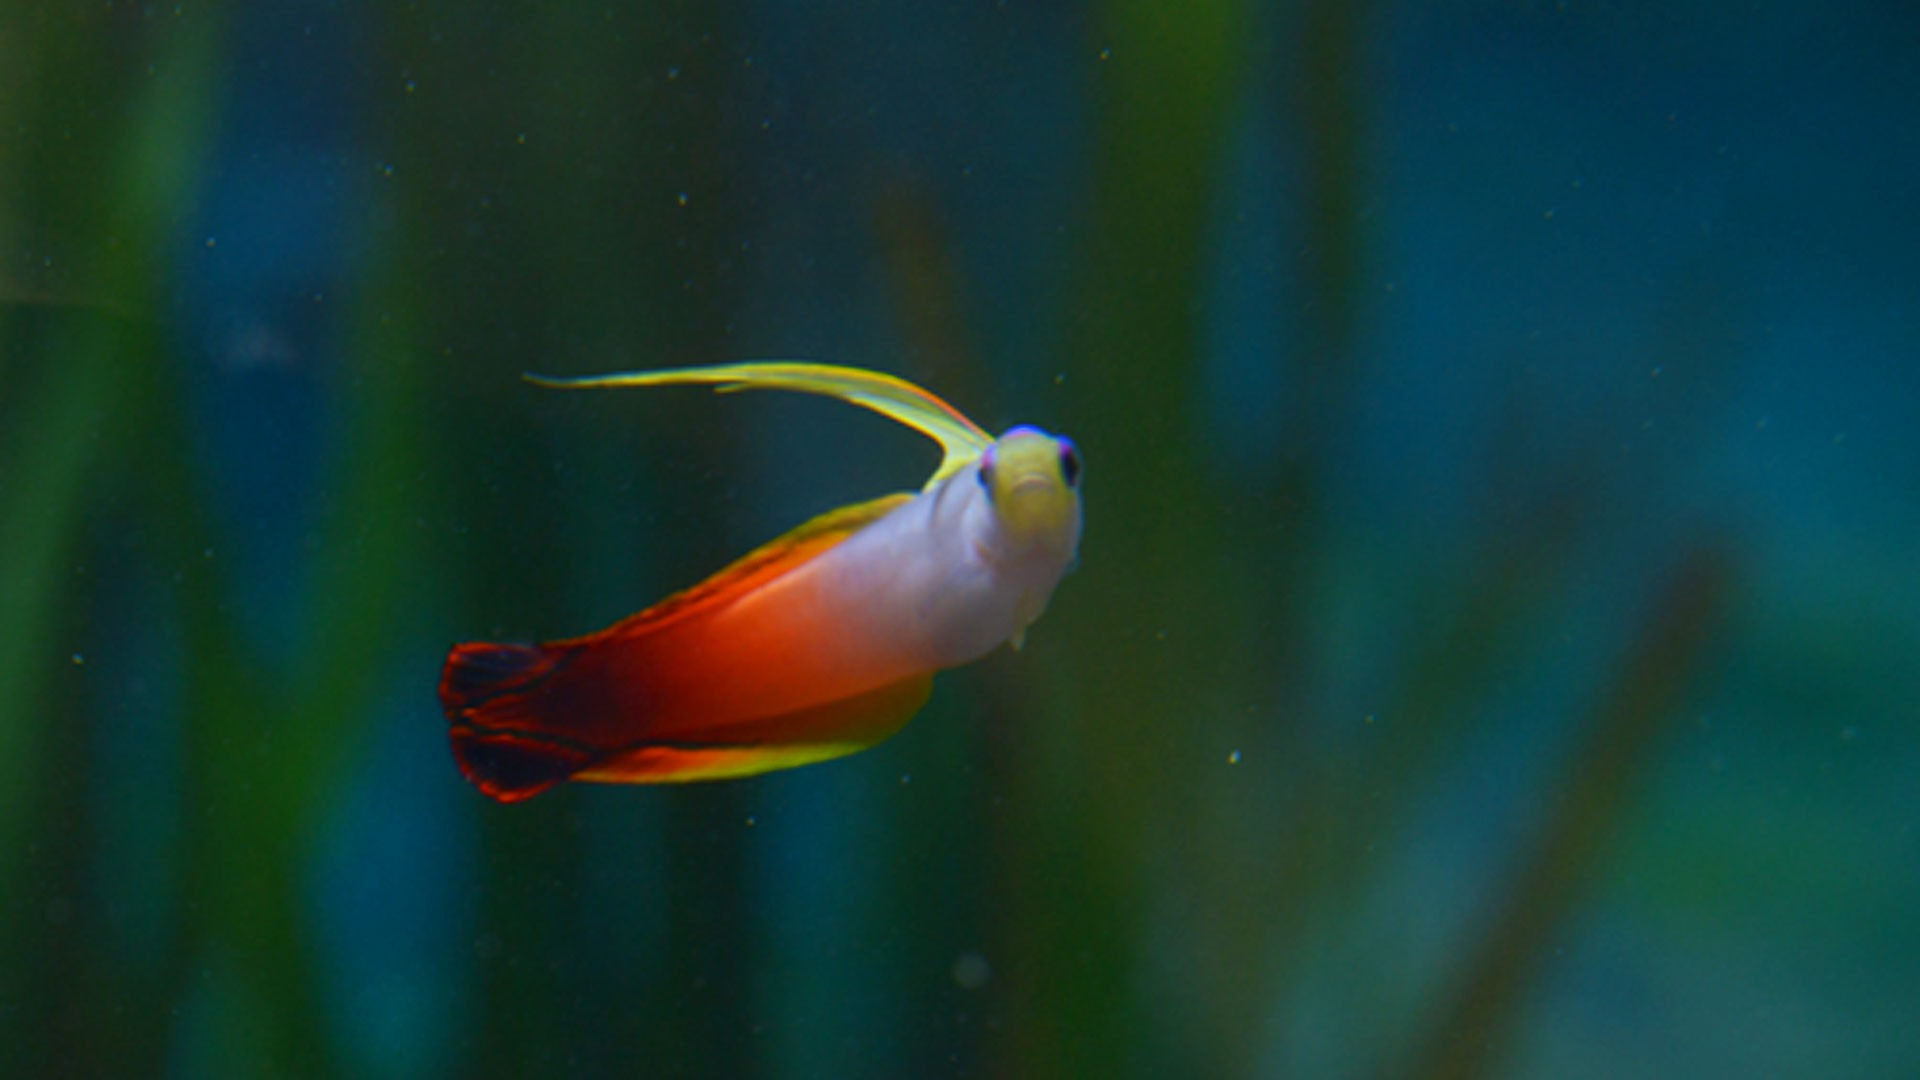 Fire goby